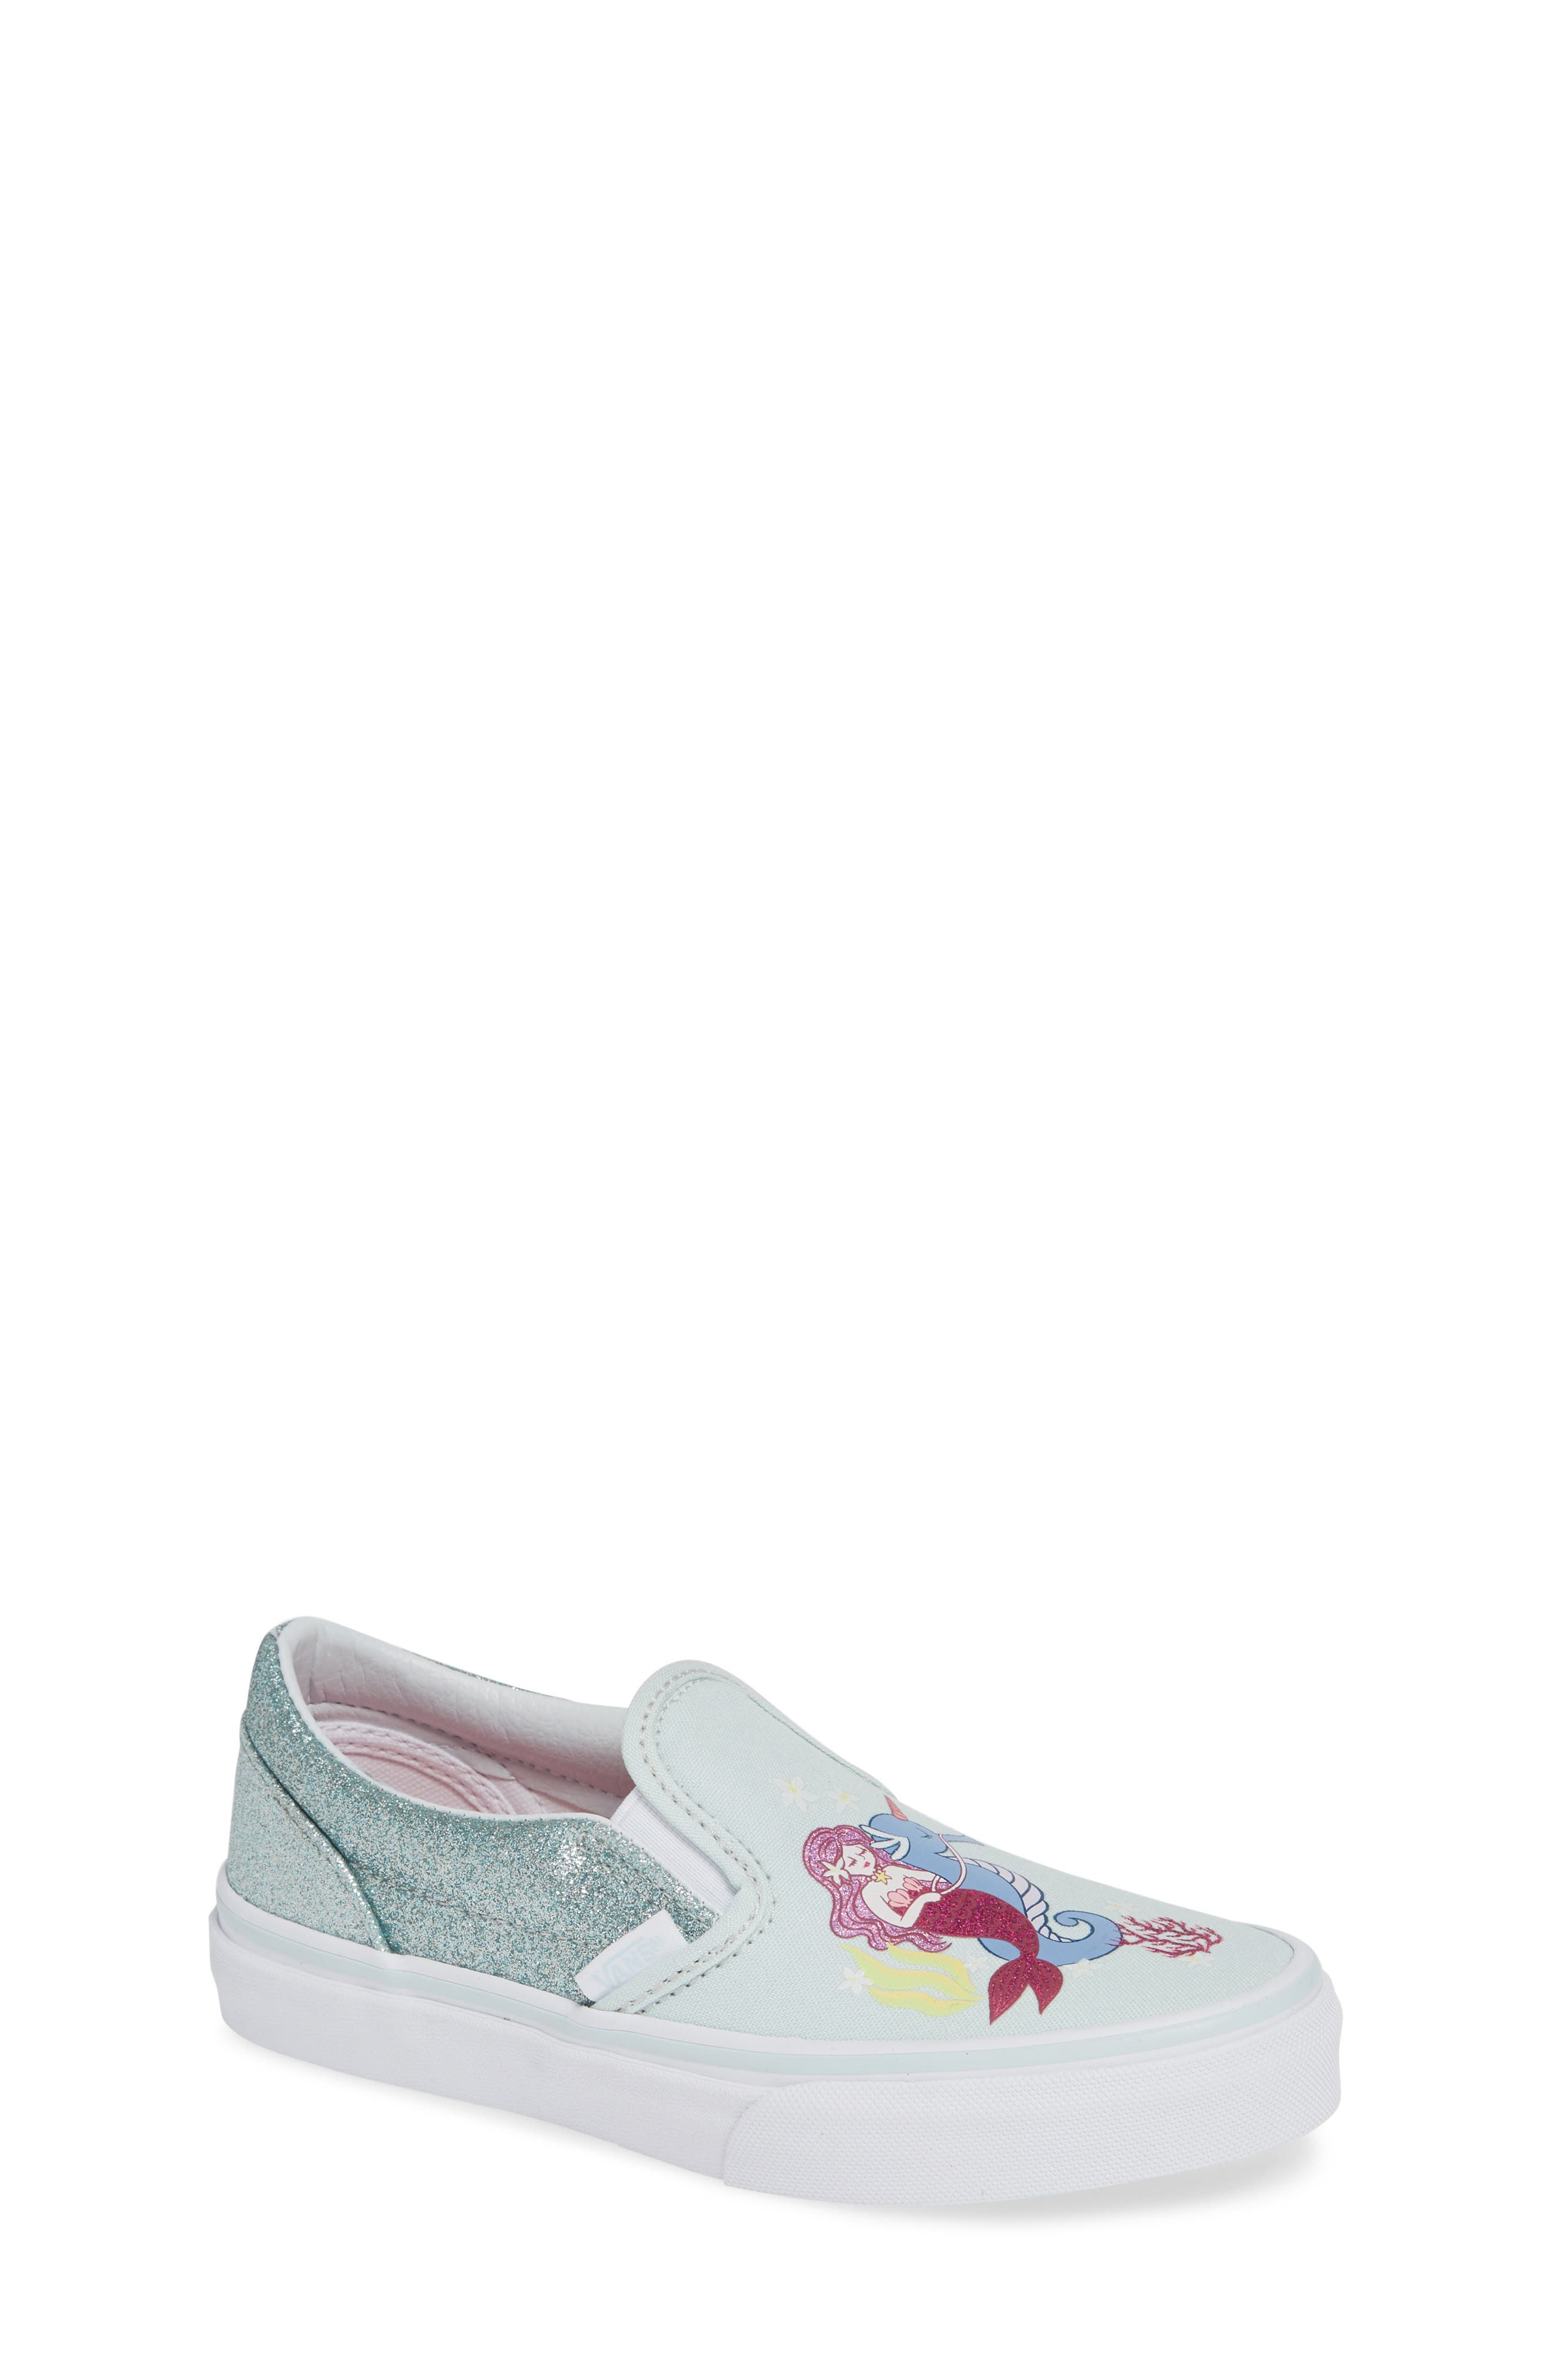 Tumble Cream Slip-On Style Printed Baby Booties - 3 to 9 Months original for sale with mastercard sale online free shipping really discount best buy cheap deals V1C6u6cT